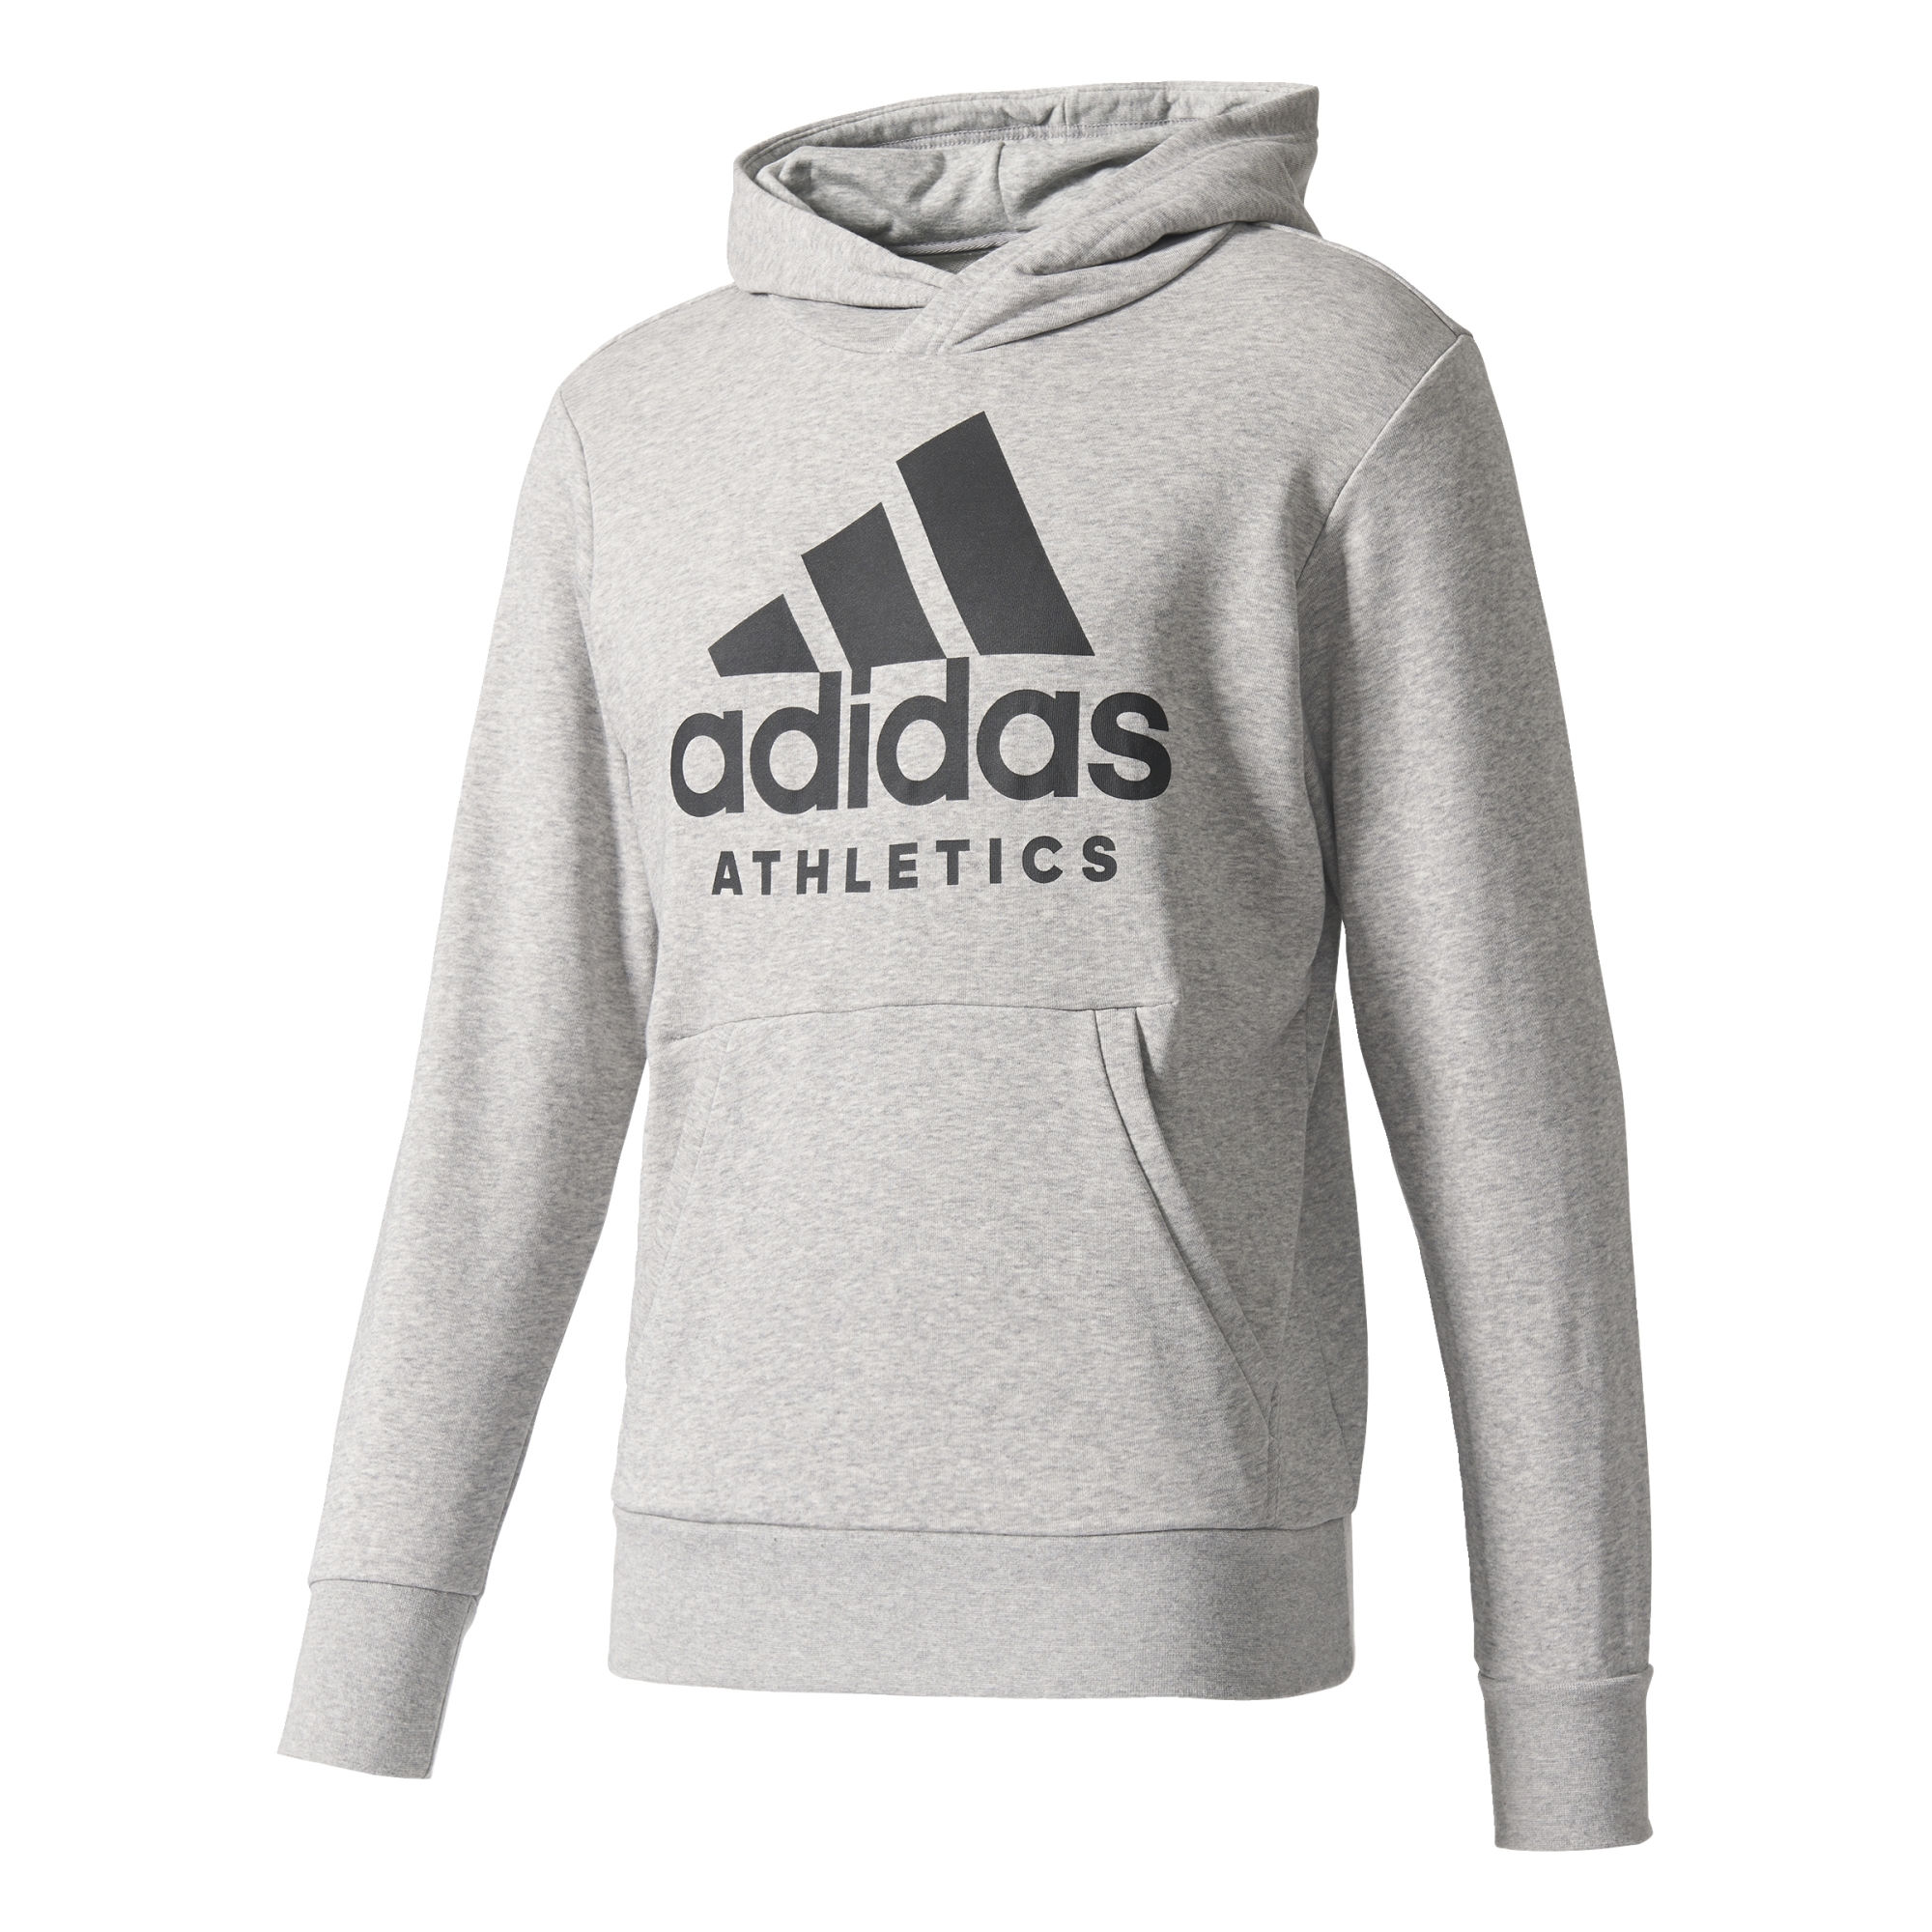 wiggle adidas sid branded pullover long sleeve running tops. Black Bedroom Furniture Sets. Home Design Ideas